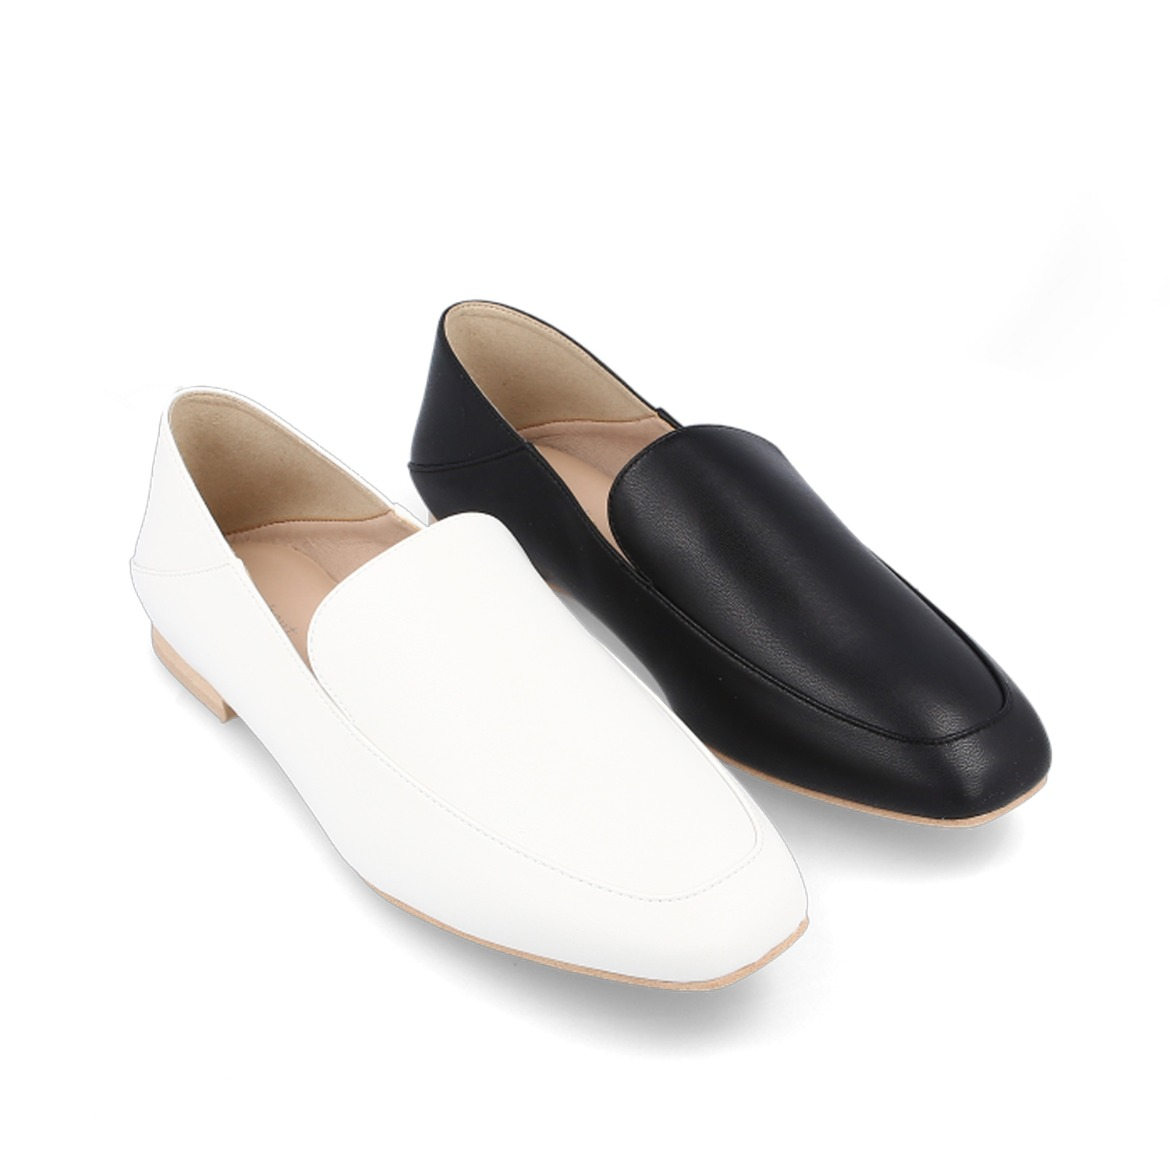 SOLEABOUT_Babouch loafer